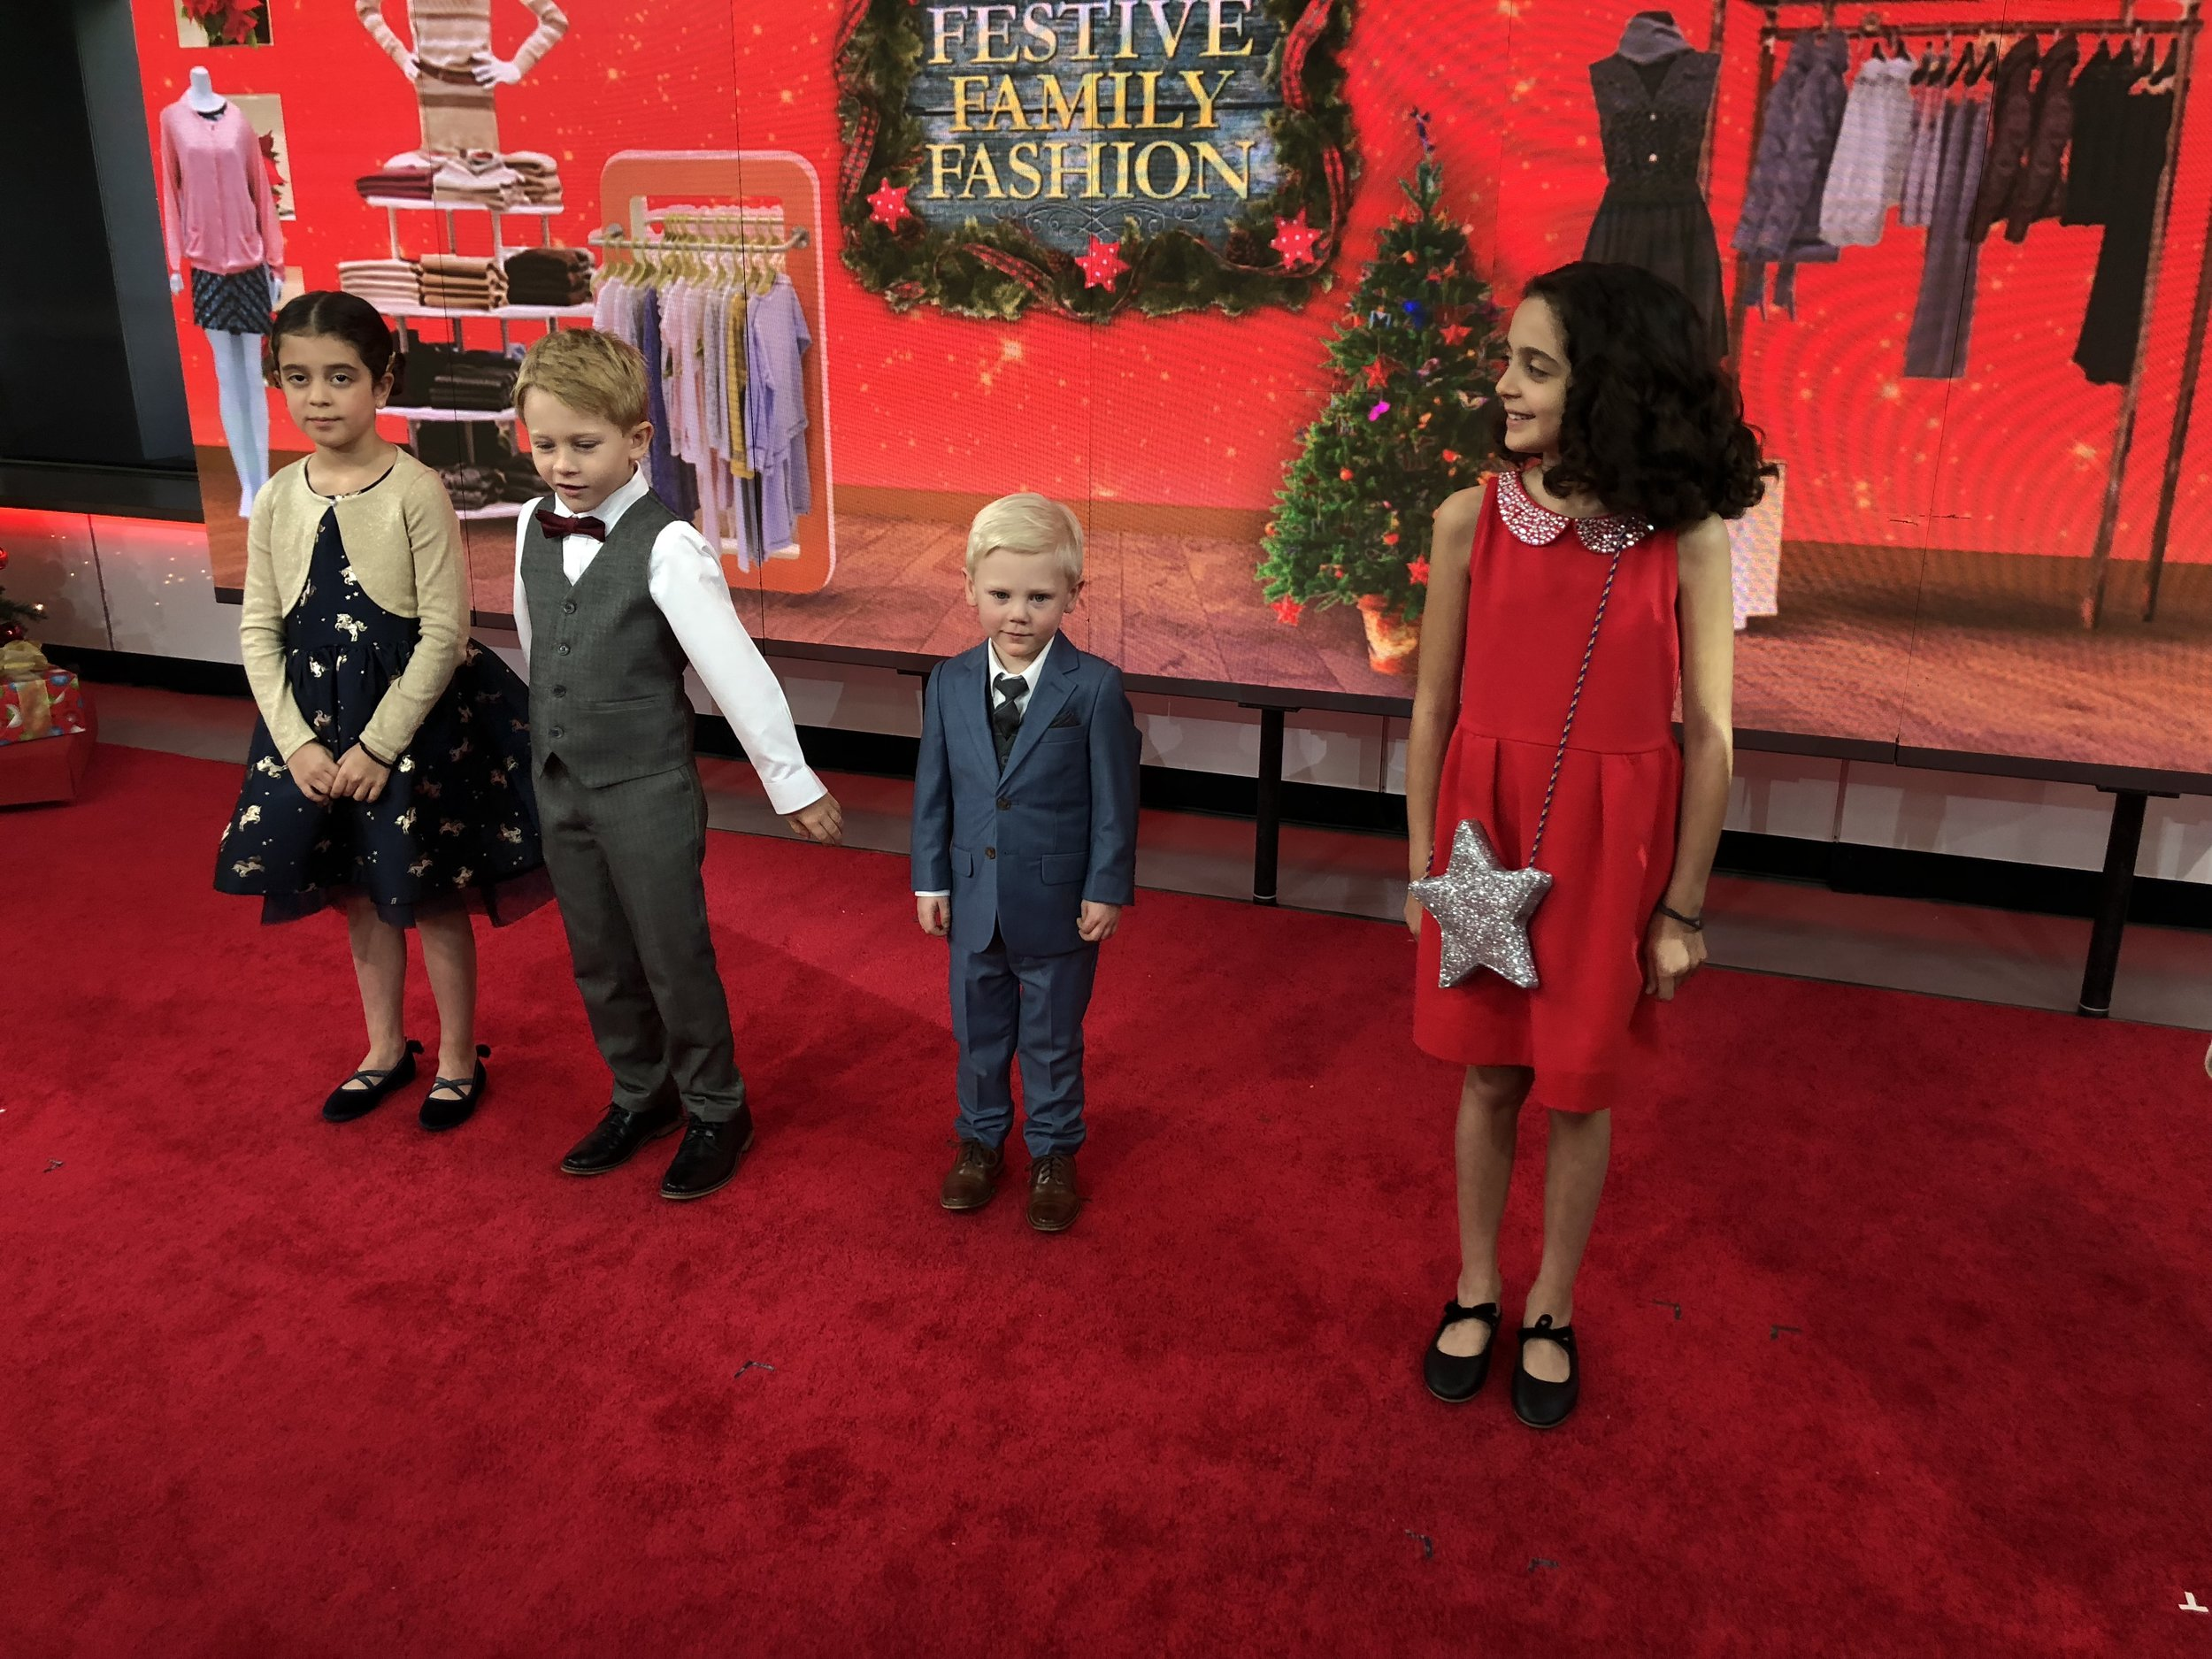 Holiday Family Fashion by Fashion Expert Amy E. Goodman boy's suits